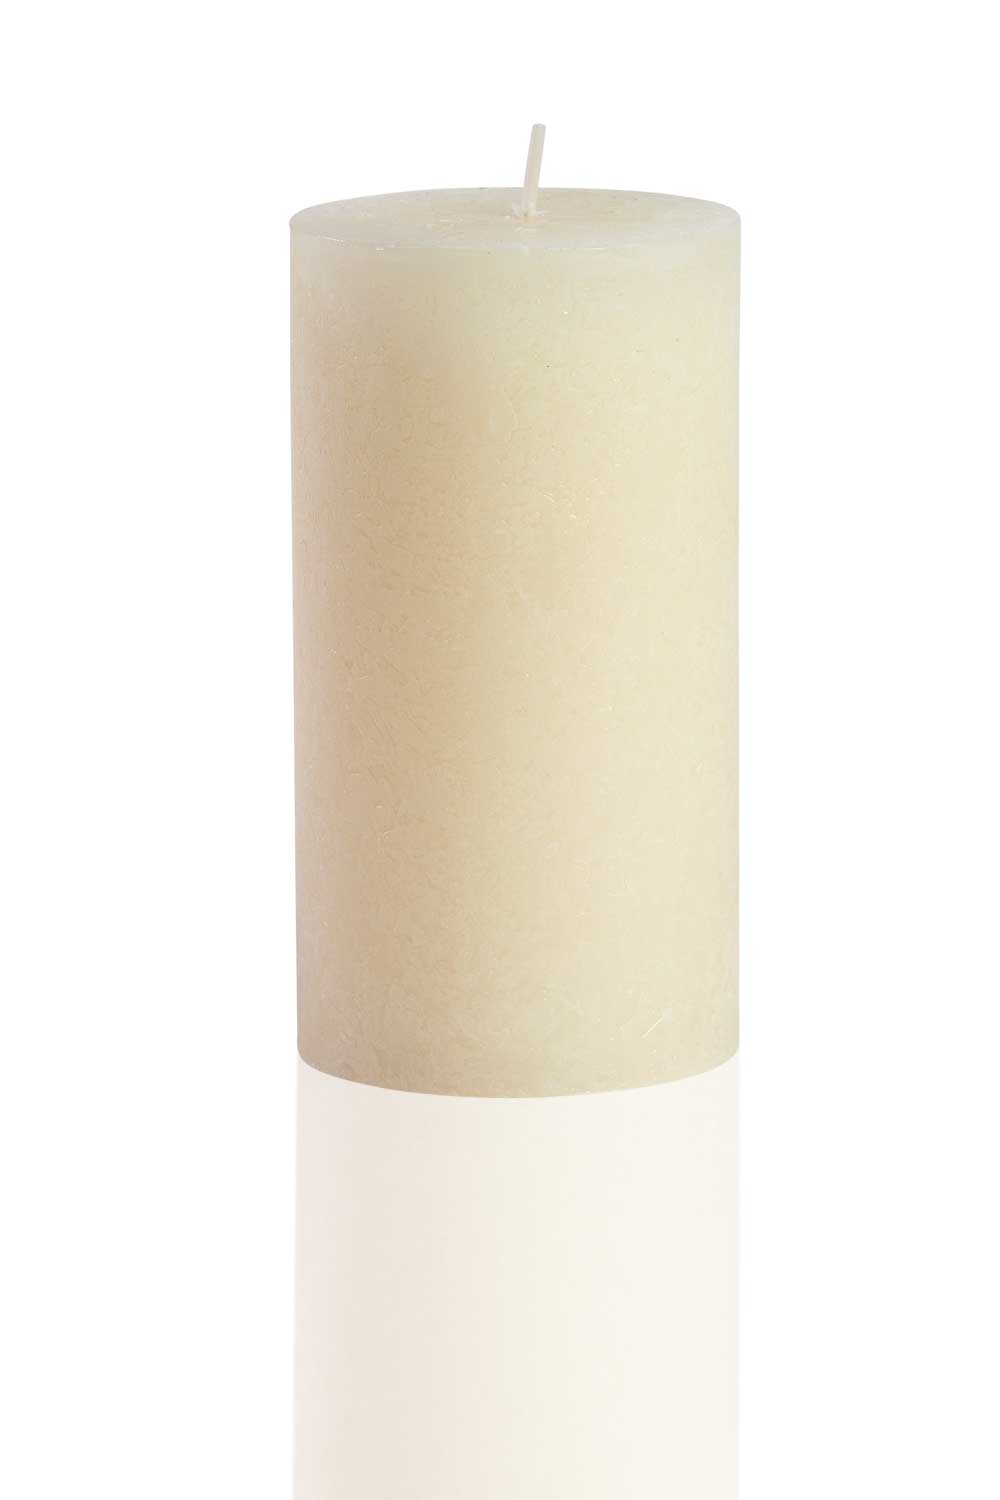 MIZALLE HOME Cylinder Form Ivory Rustic (13X6,8) (1)